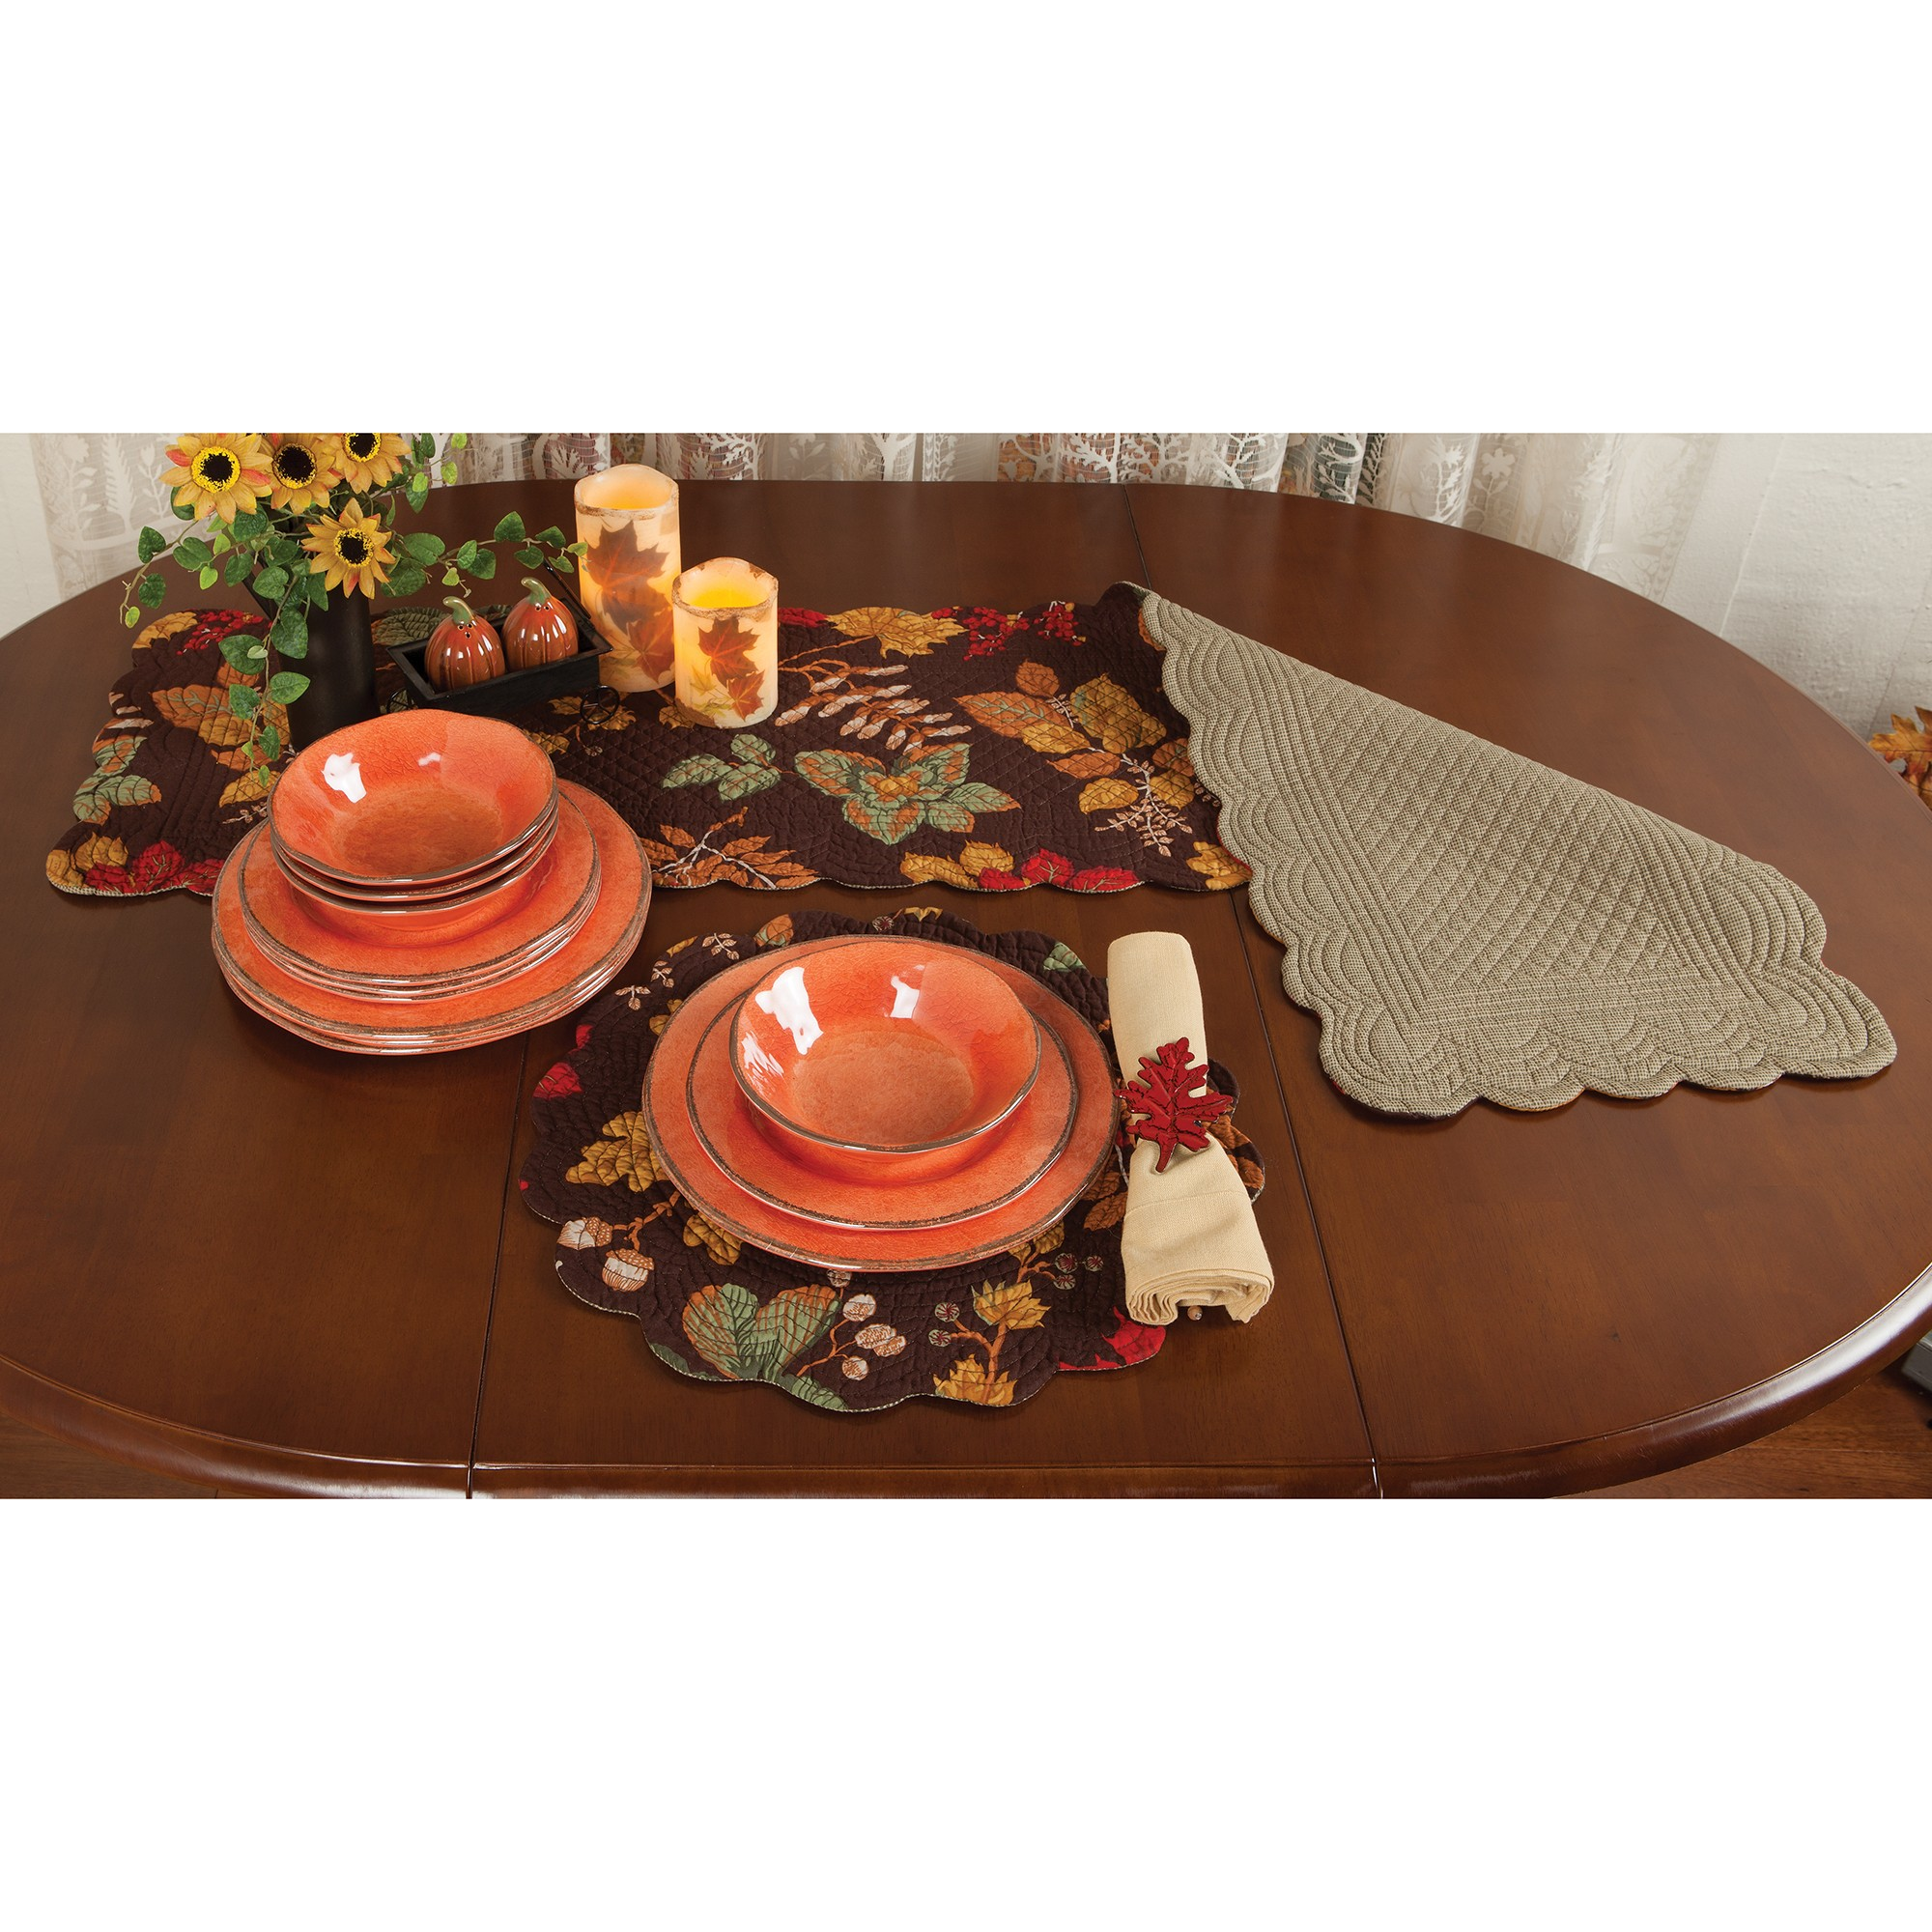 autumn festivities tabletop accents sturbridge yankee work placemat and runner table accent wood end plans round glass dining set kitchen island gold triangle white washed tables